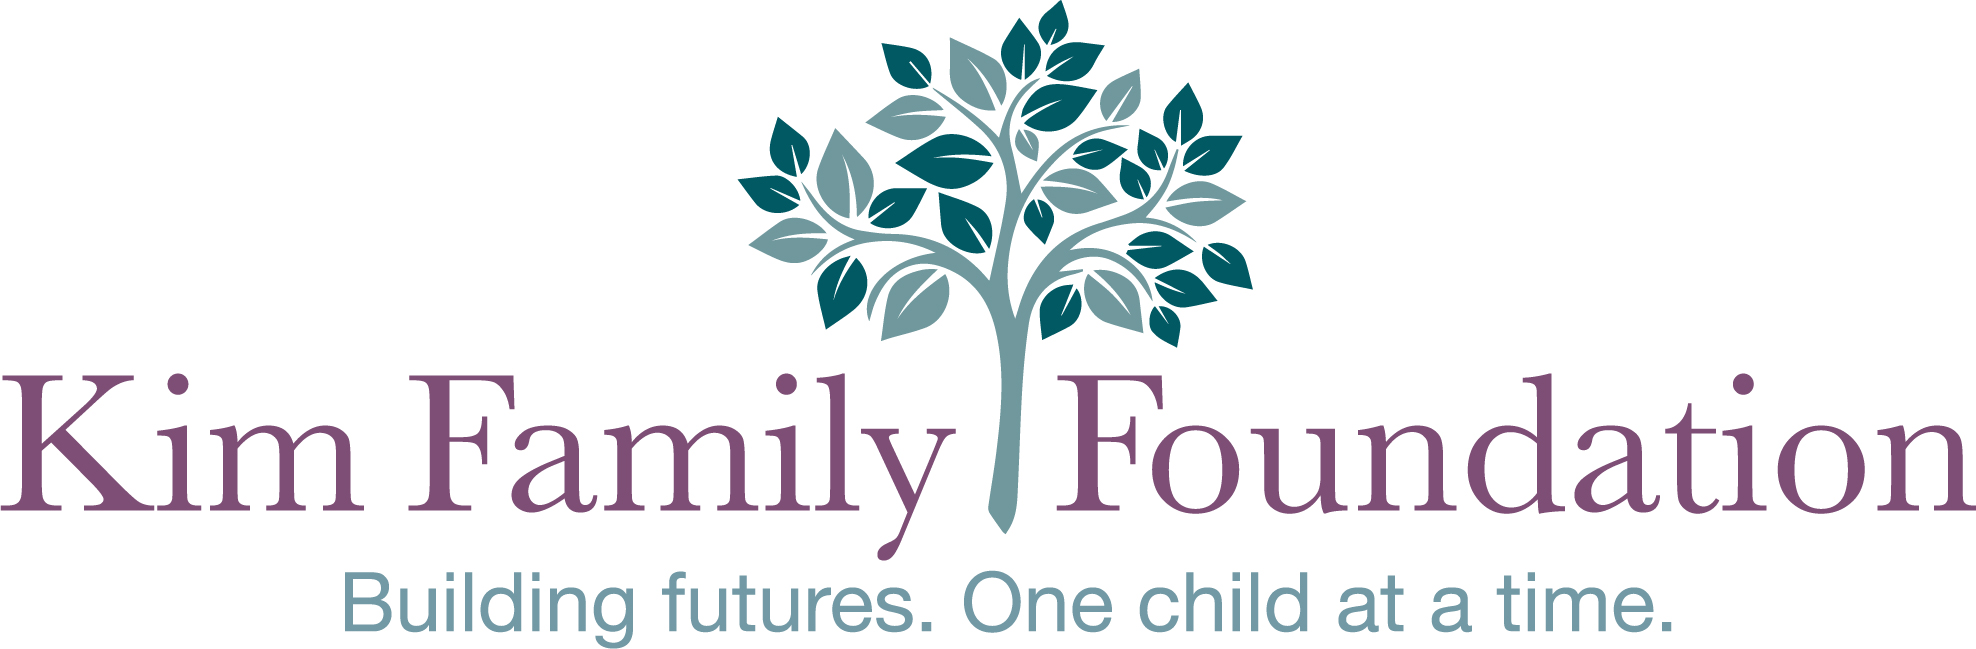 Kim Family Foundation